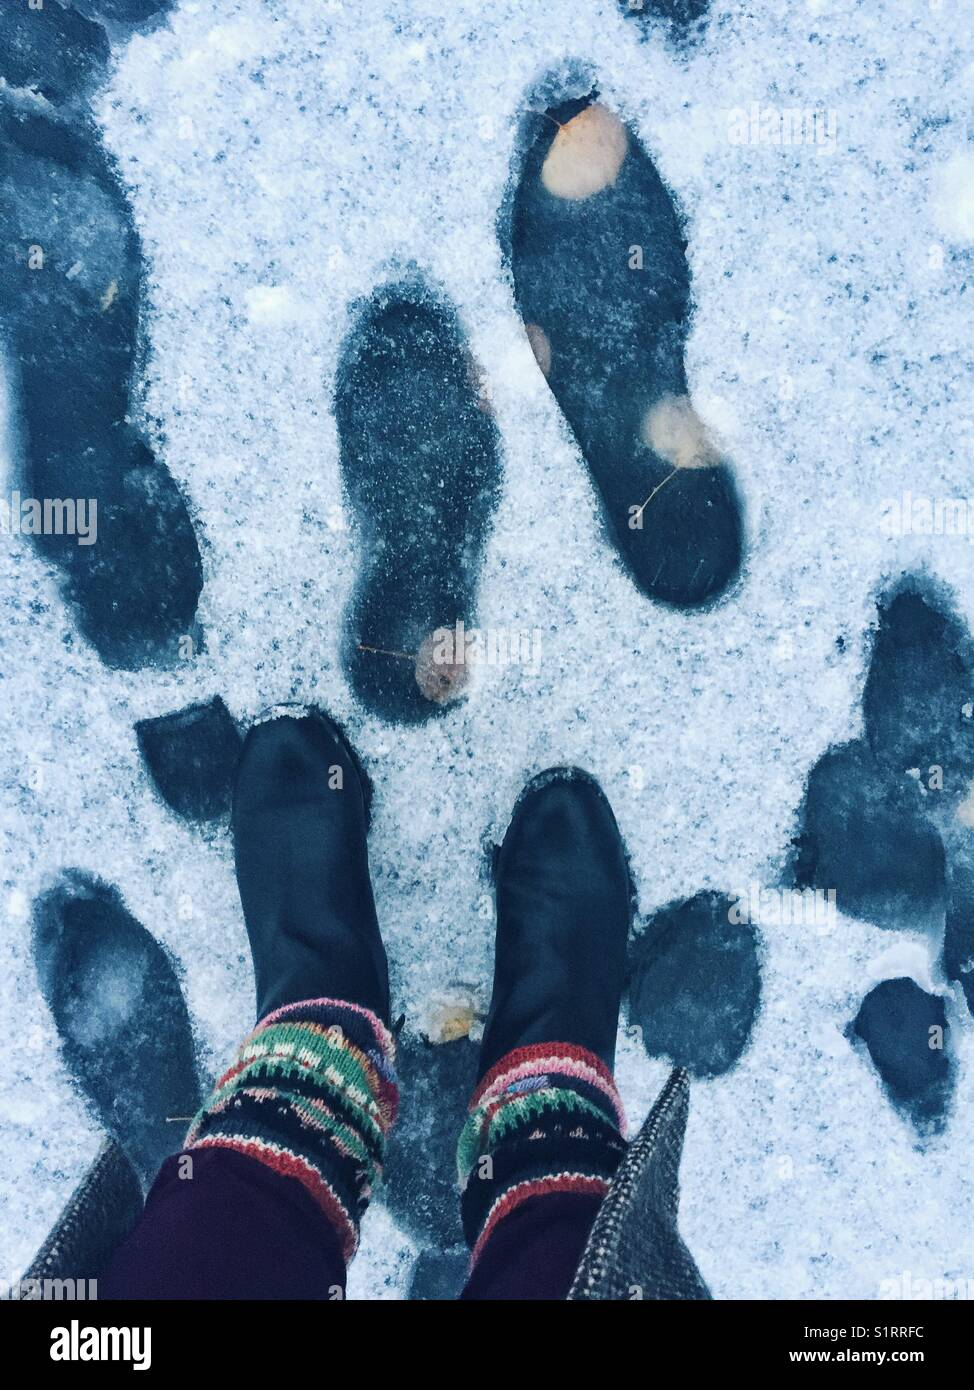 Boots and knitted leg warmers standing on the sidewalk with first snow and footsteps - Stock Image